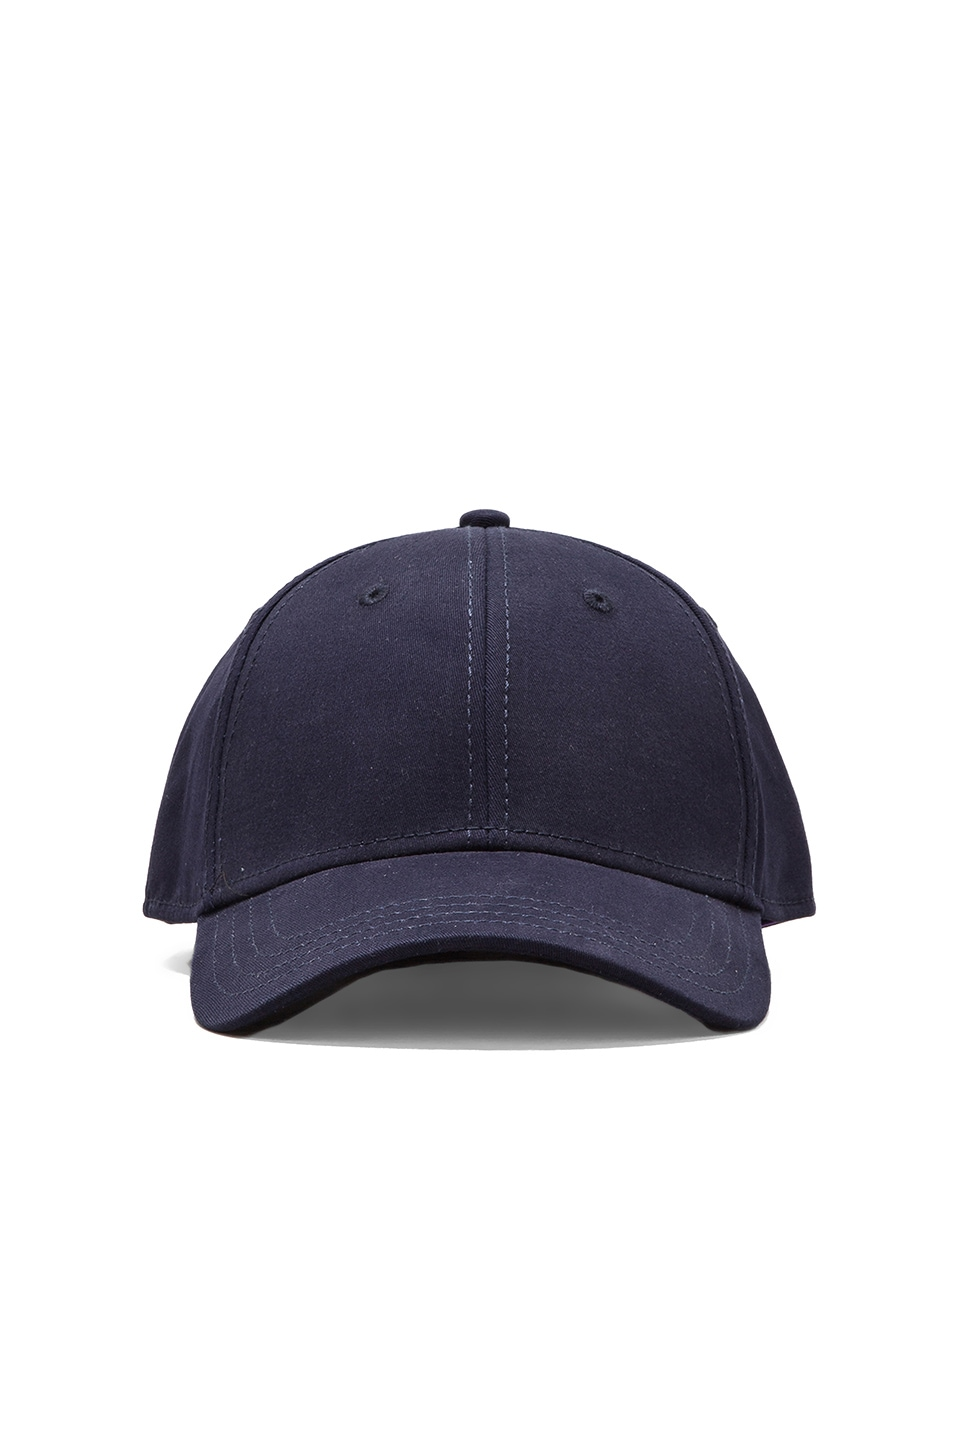 Director's Cap by Gents Co.